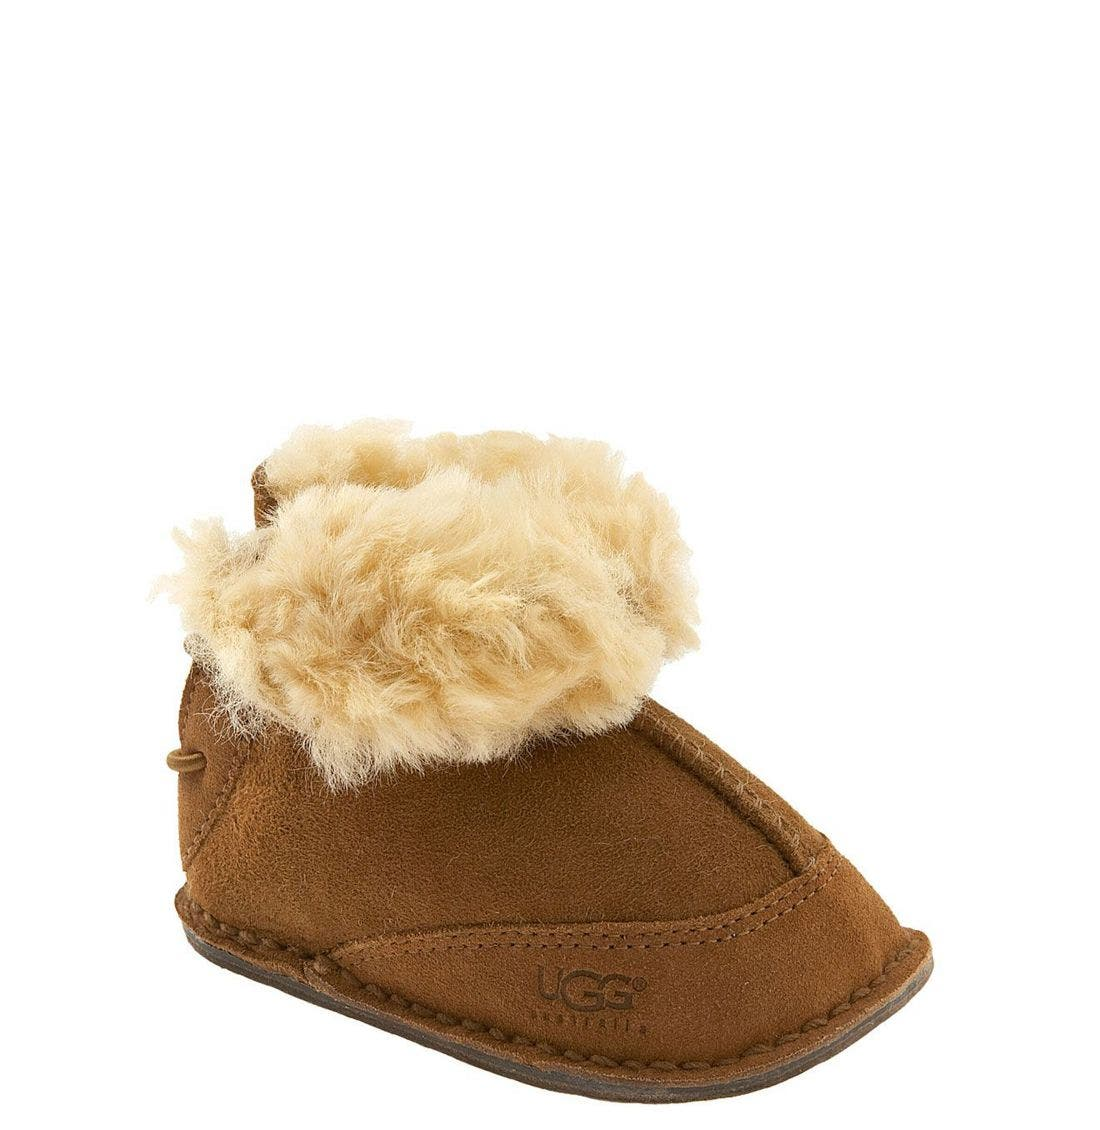 Alternate Image 1 Selected - UGG® 'Boo' Bootie (Baby & Walker)